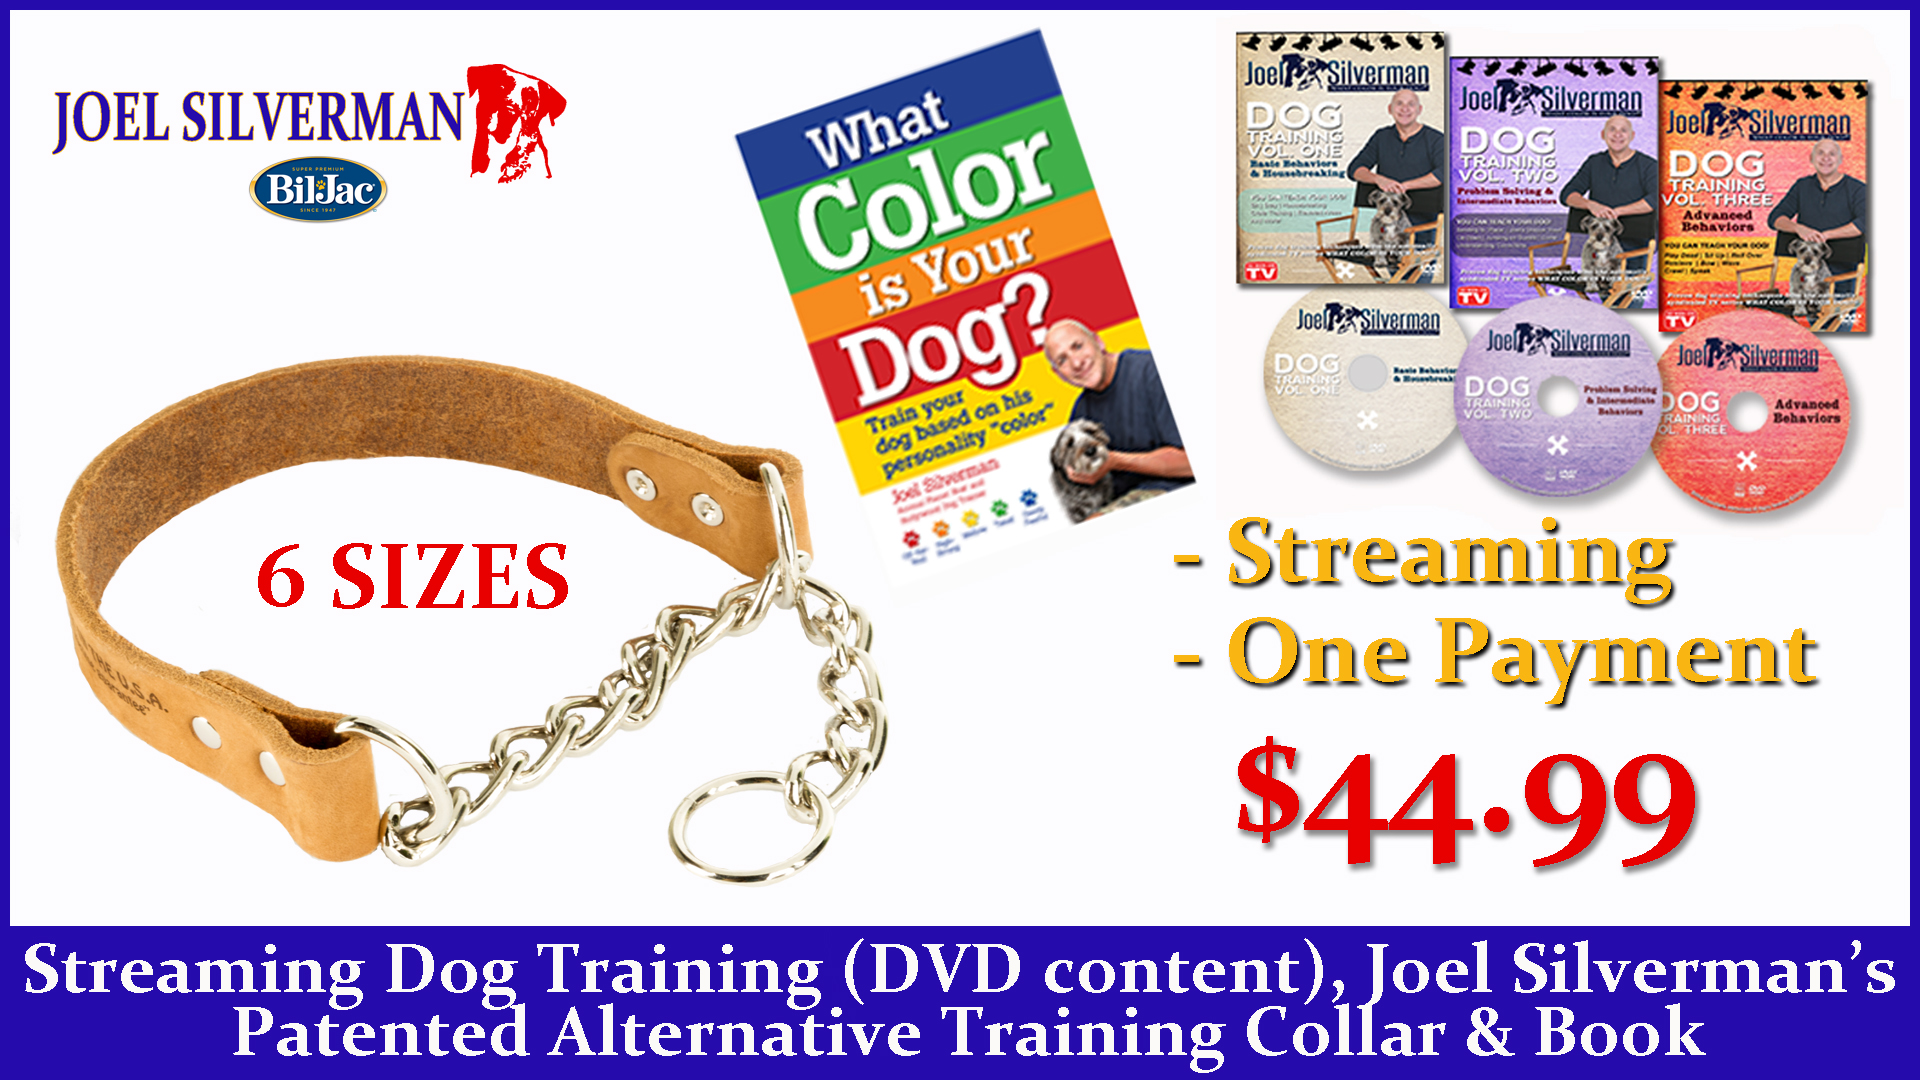 Streaming Dog Training – Basic, Intermediate, And Advanced + Alternative Training Collar + What Color Is Your Dog?